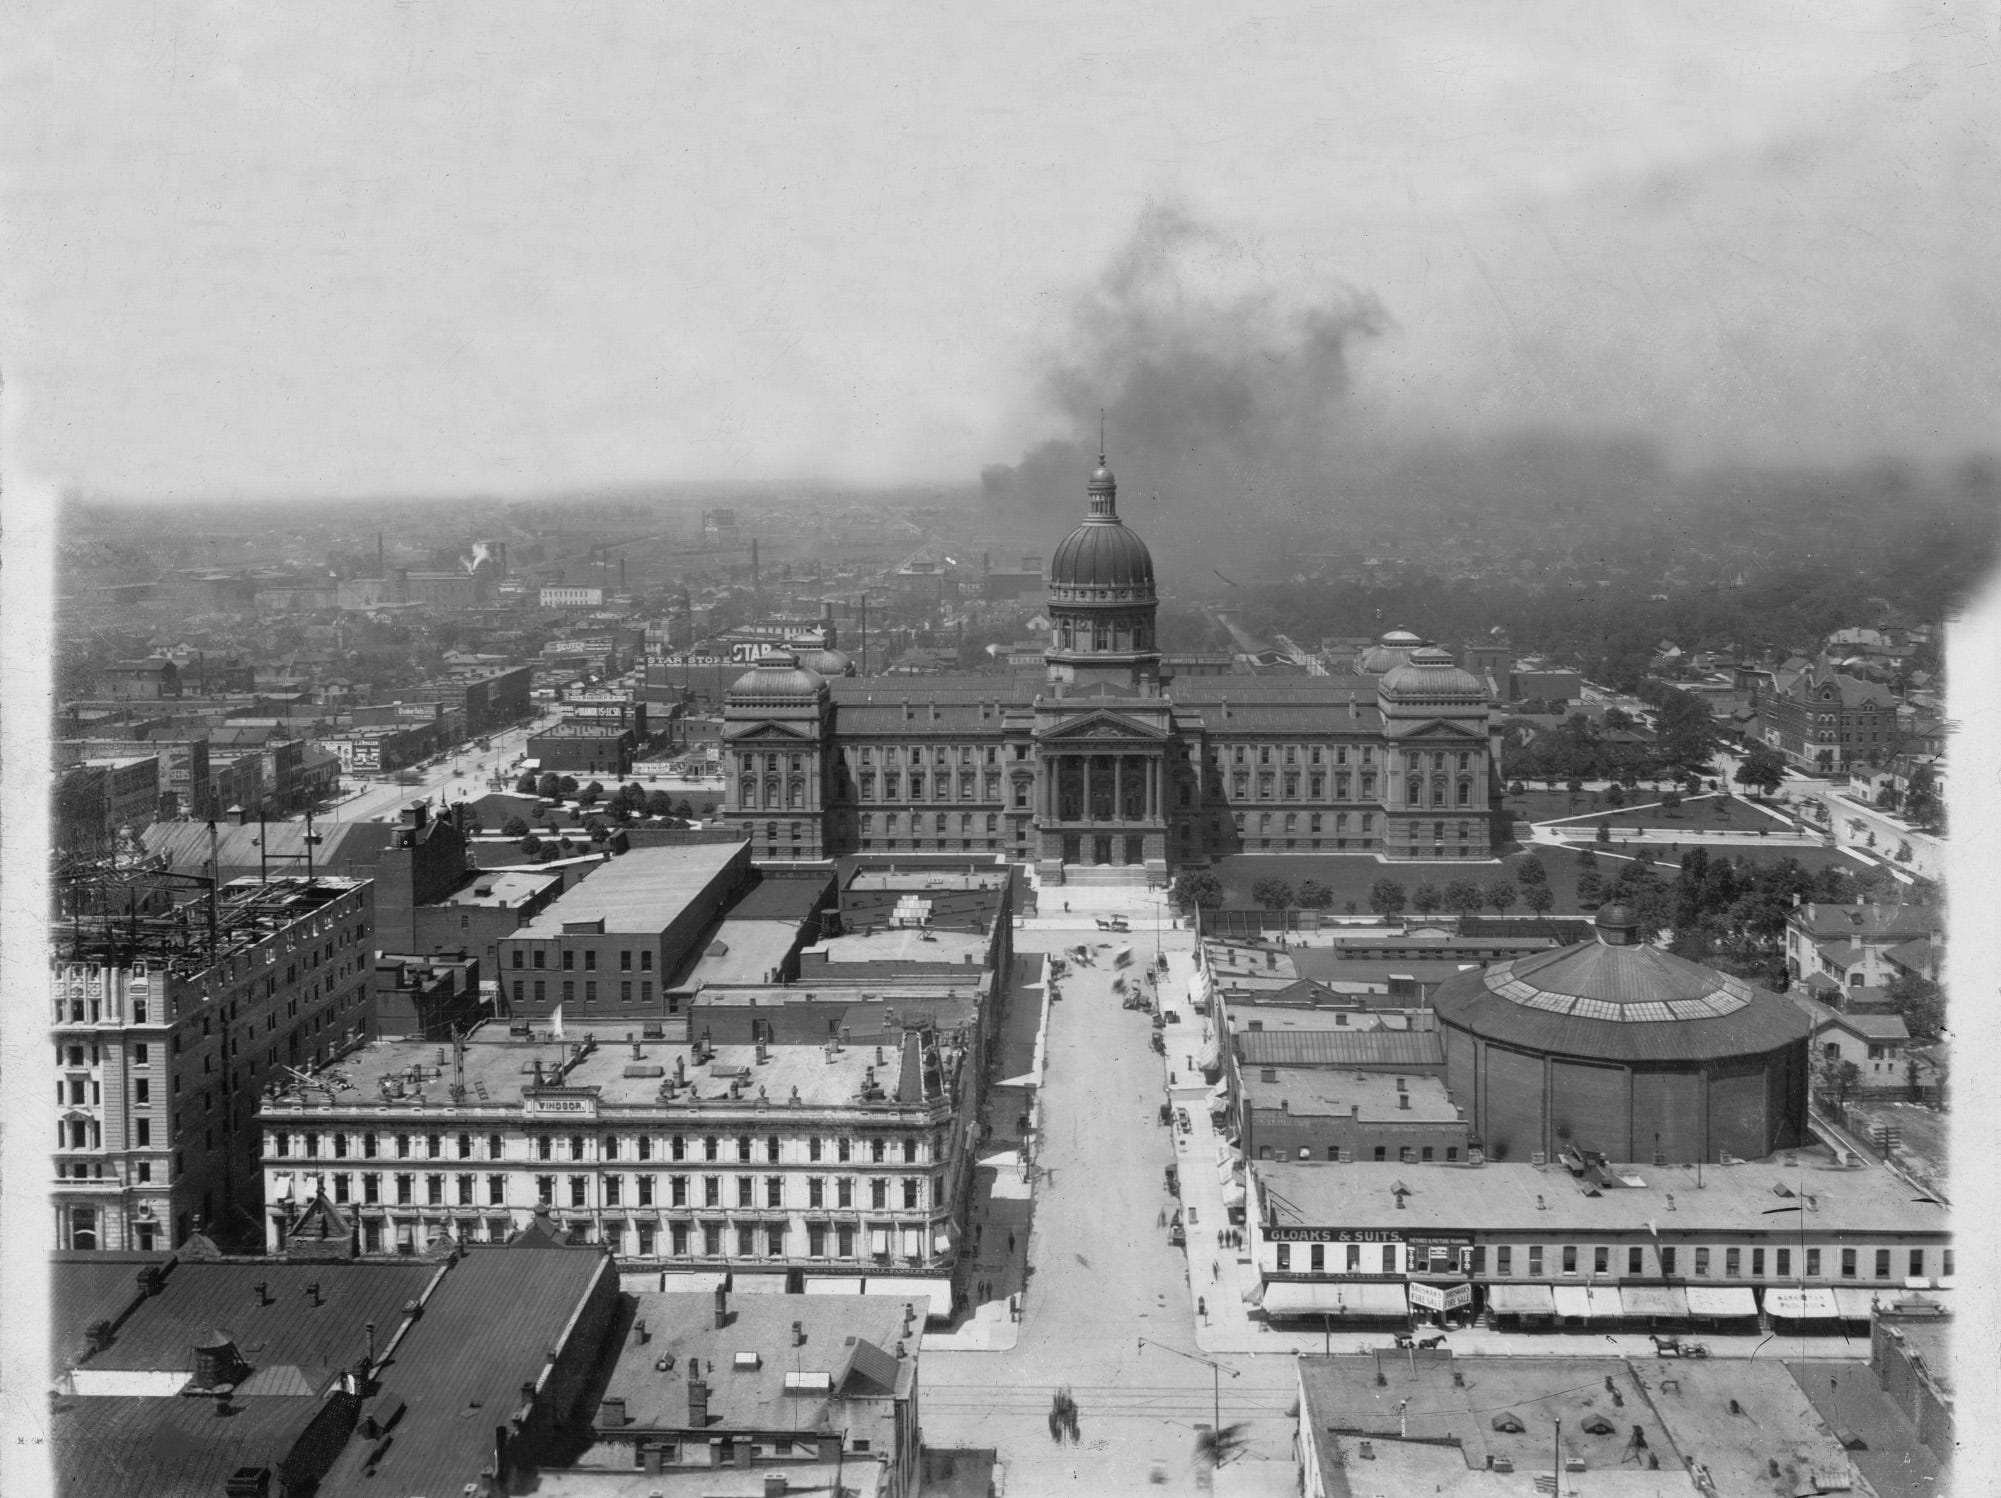 The Indiana Statehouse from the top of the Soldiers and Sailors Monument in 1908. The round building to the right is the Cyclorama, a 42-foot tall, 358-foot wide painting depicting the Civil War Battle of Atlanta.